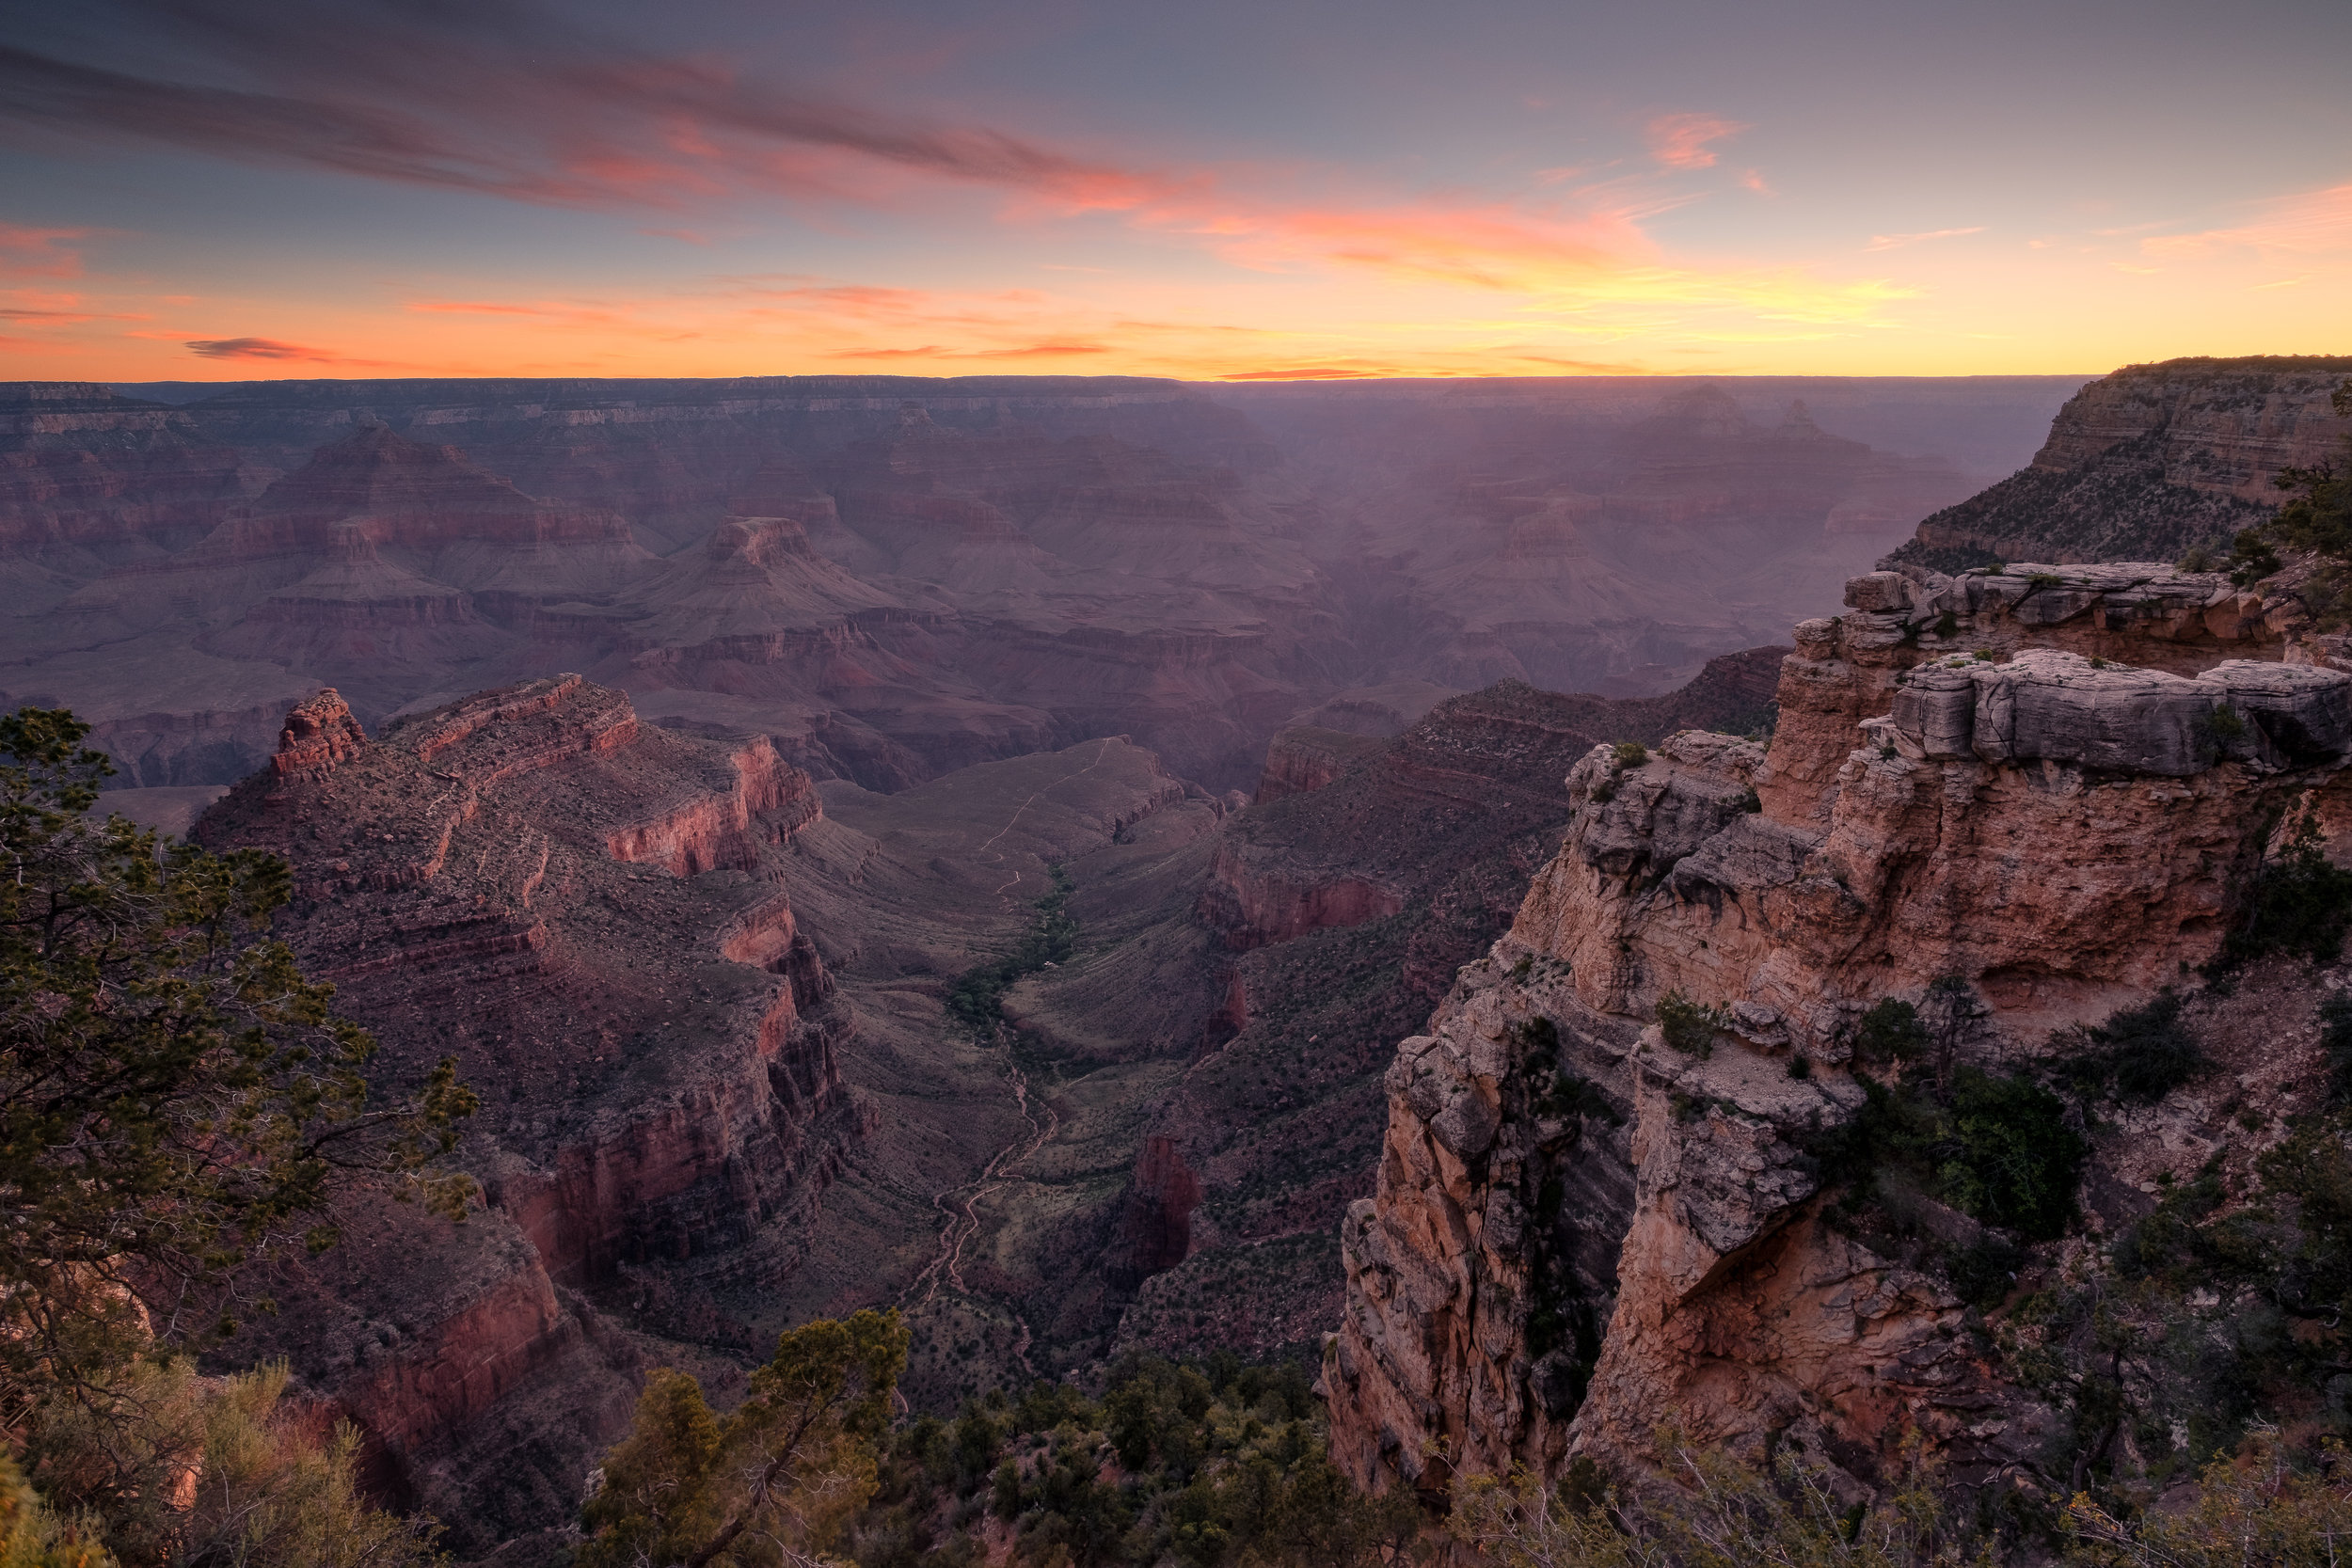 """Battleship Rock Sunrise."" June 7, 2017, Grand Canyon South Rim Fujifilm X-Pro2, 14mm, f/11, 1/3, ISO 200"